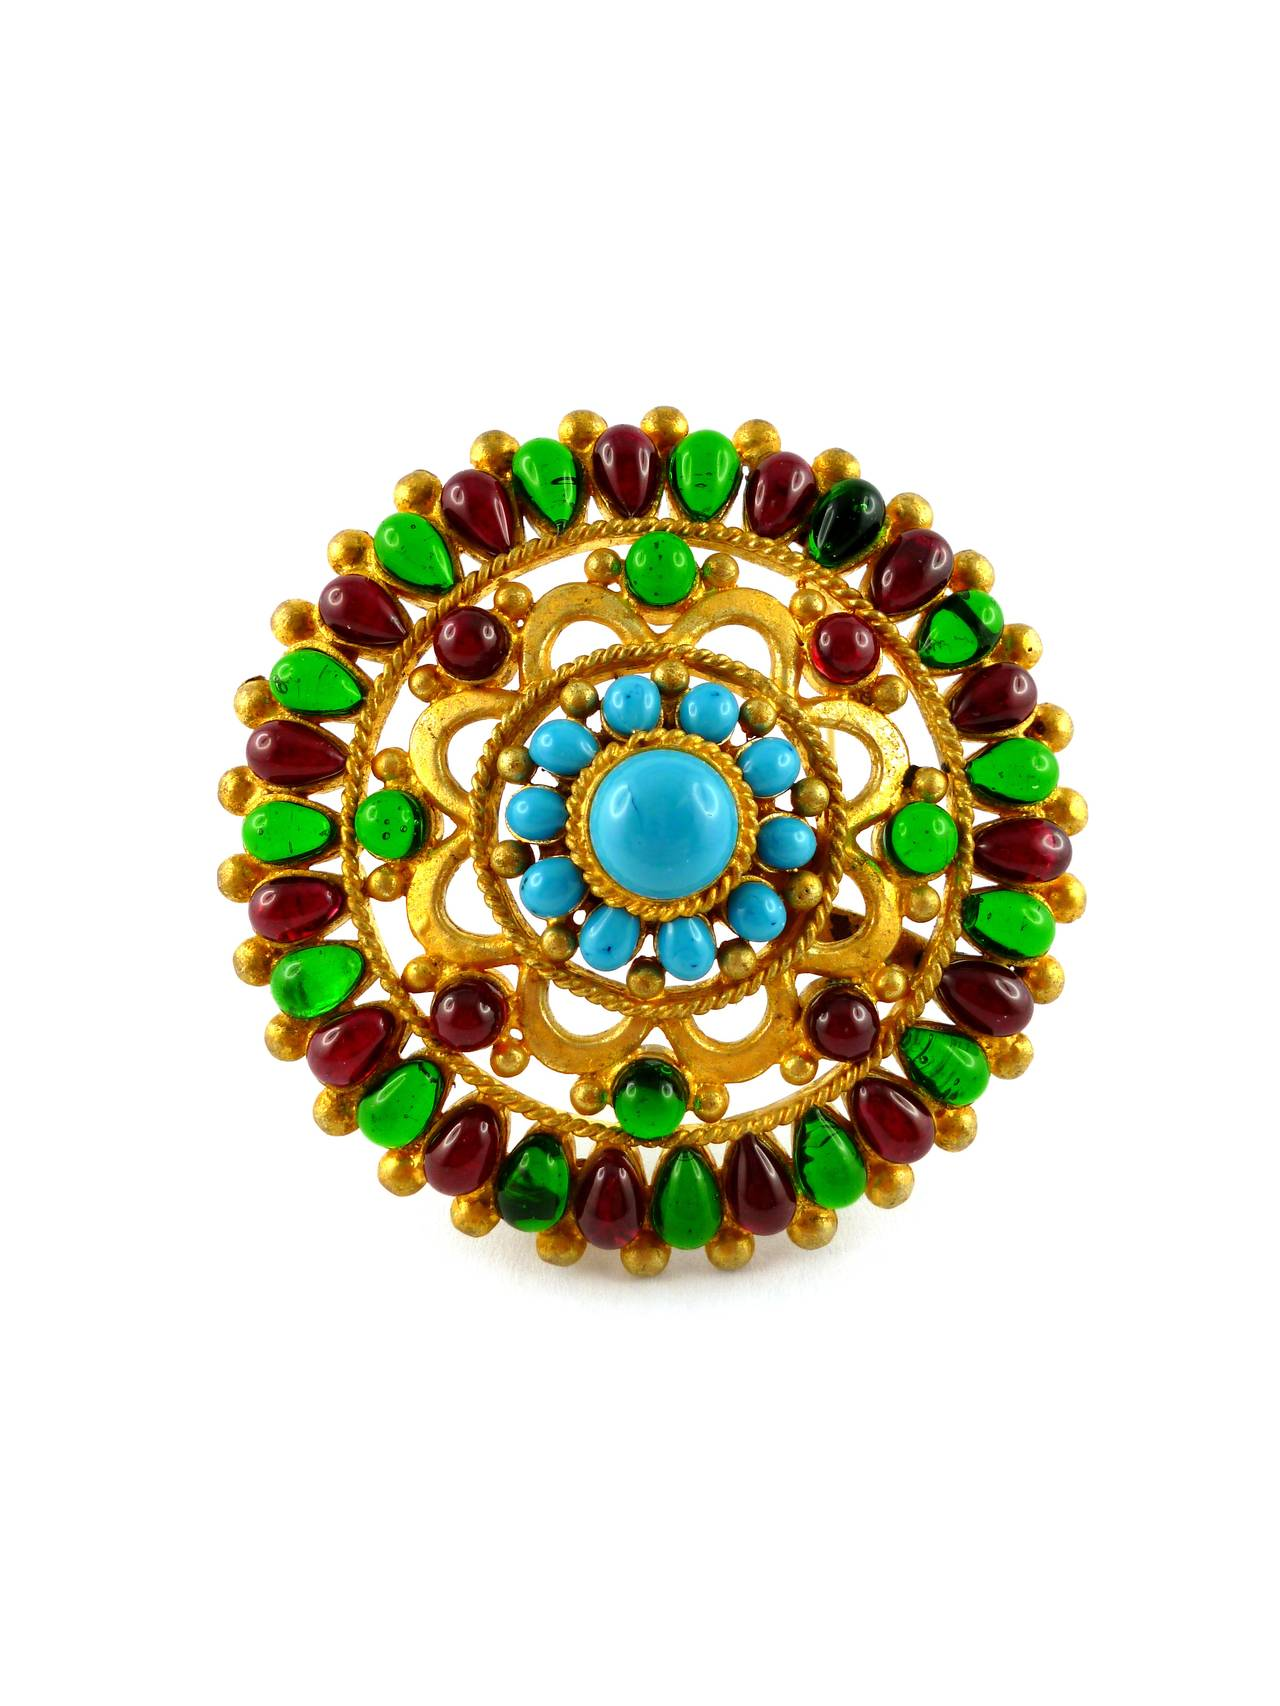 CHANEL massive opulent Mughal brooch and pendant.  Openwork matte gold tone metal embellished with faux precious stone pate de verre GRIPOIX cabochons : turquoise, ruby and emerald.  Fall 1993 Collection.  Stamped CHANEL 93 A Made in France. Private